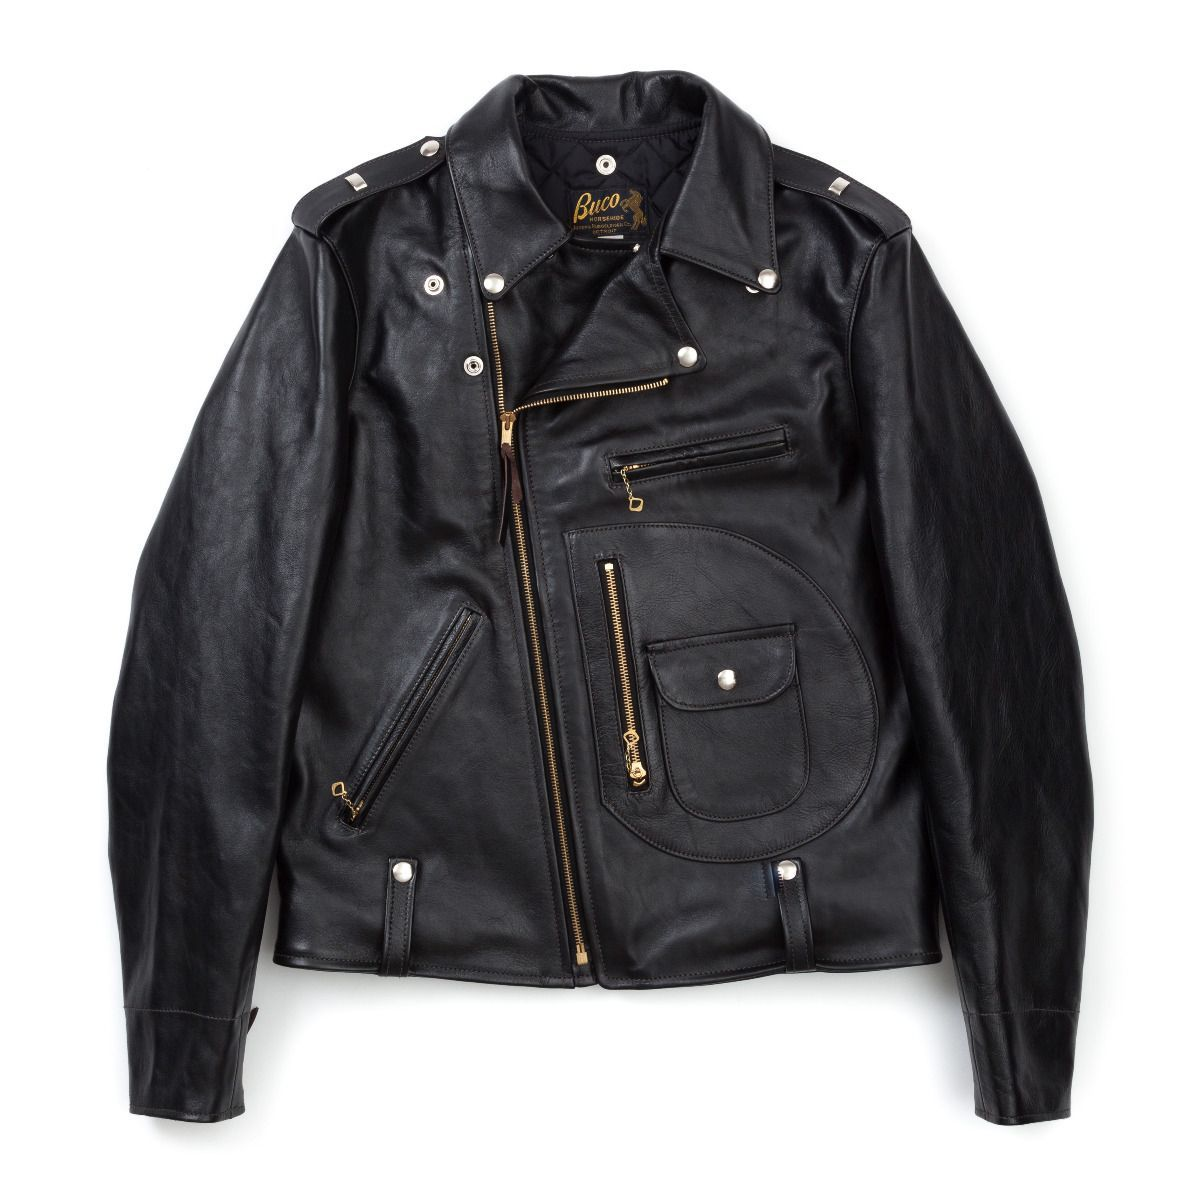 The Real McCoy's Buco J-24 Horsehide Leather Jacket